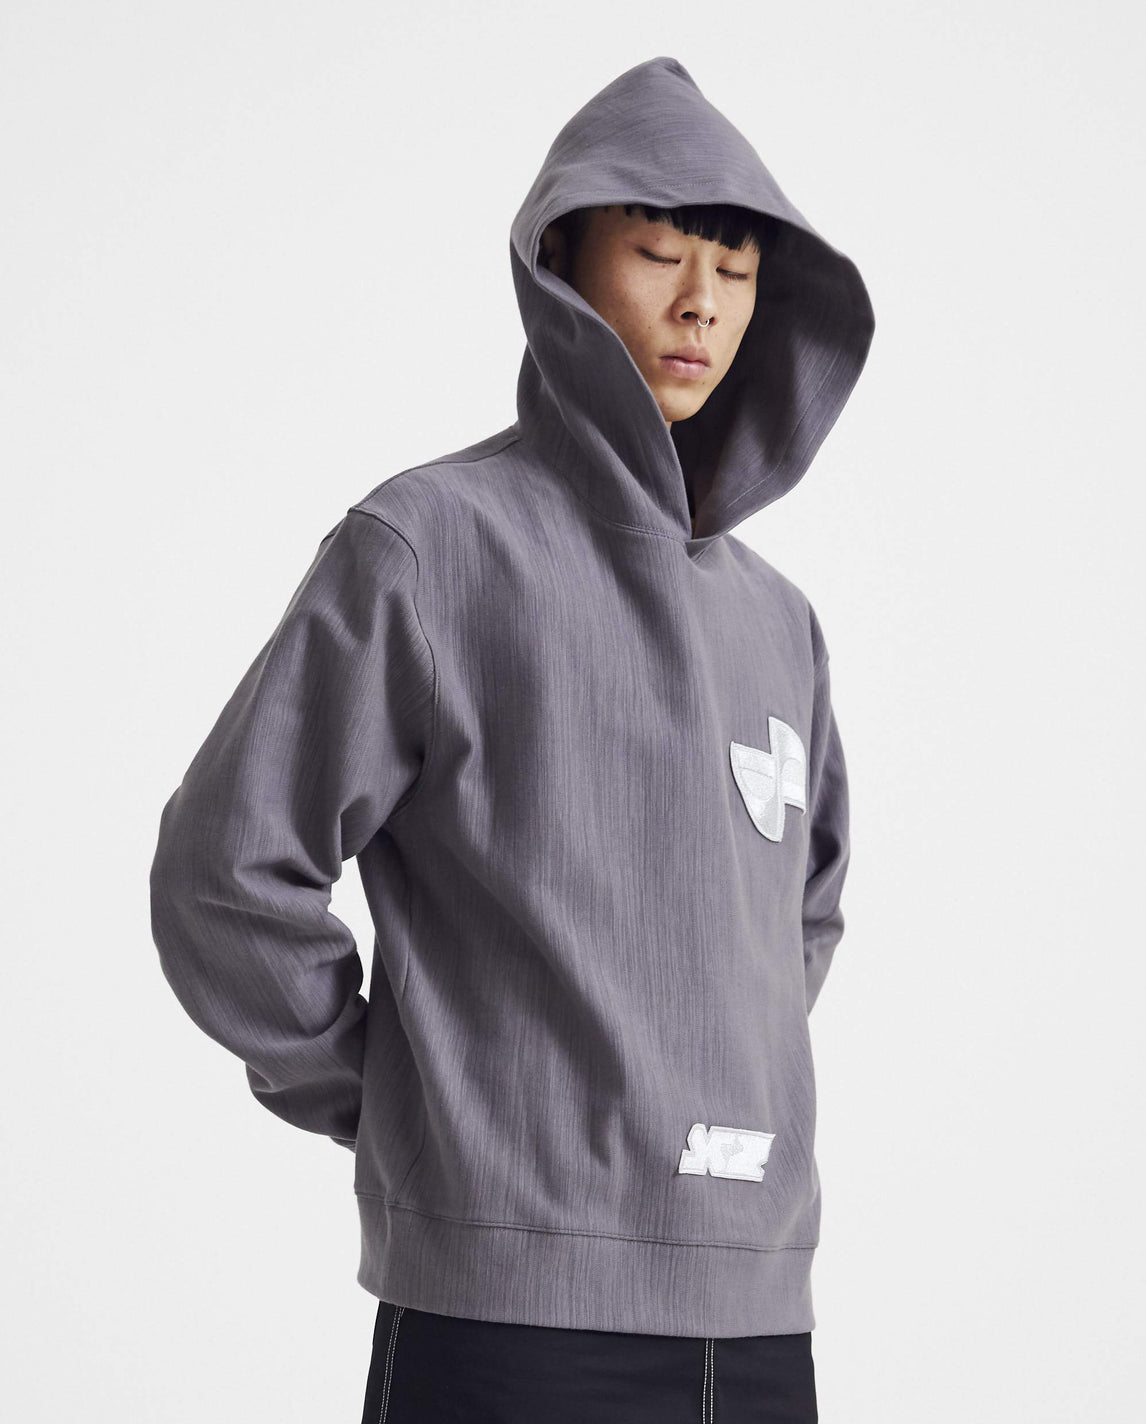 Hoodie with Grey Logo Patch - Dark Grey MENS XANDER ZHOU